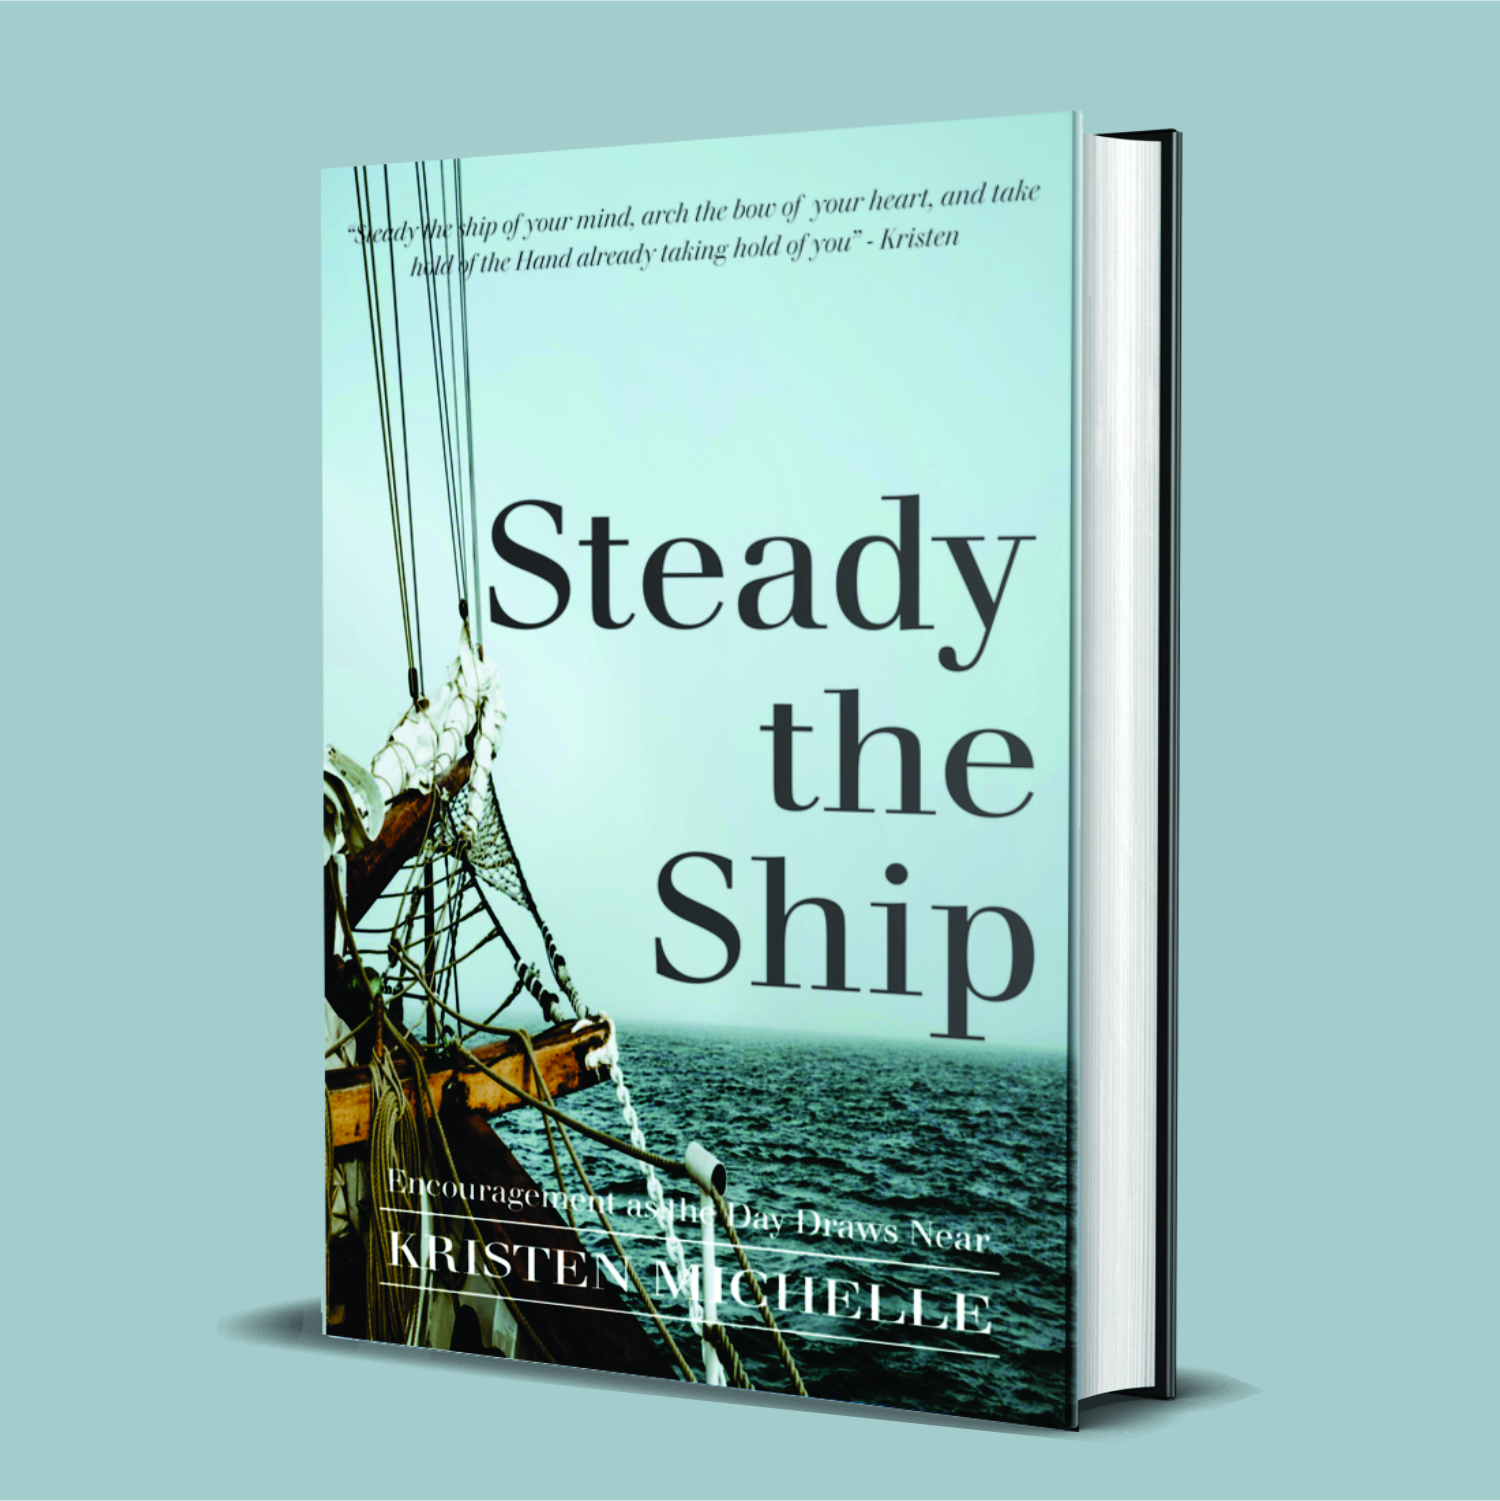 Steady the Ship: Encouragement as the Day Draws Near. By Kristen Michelle